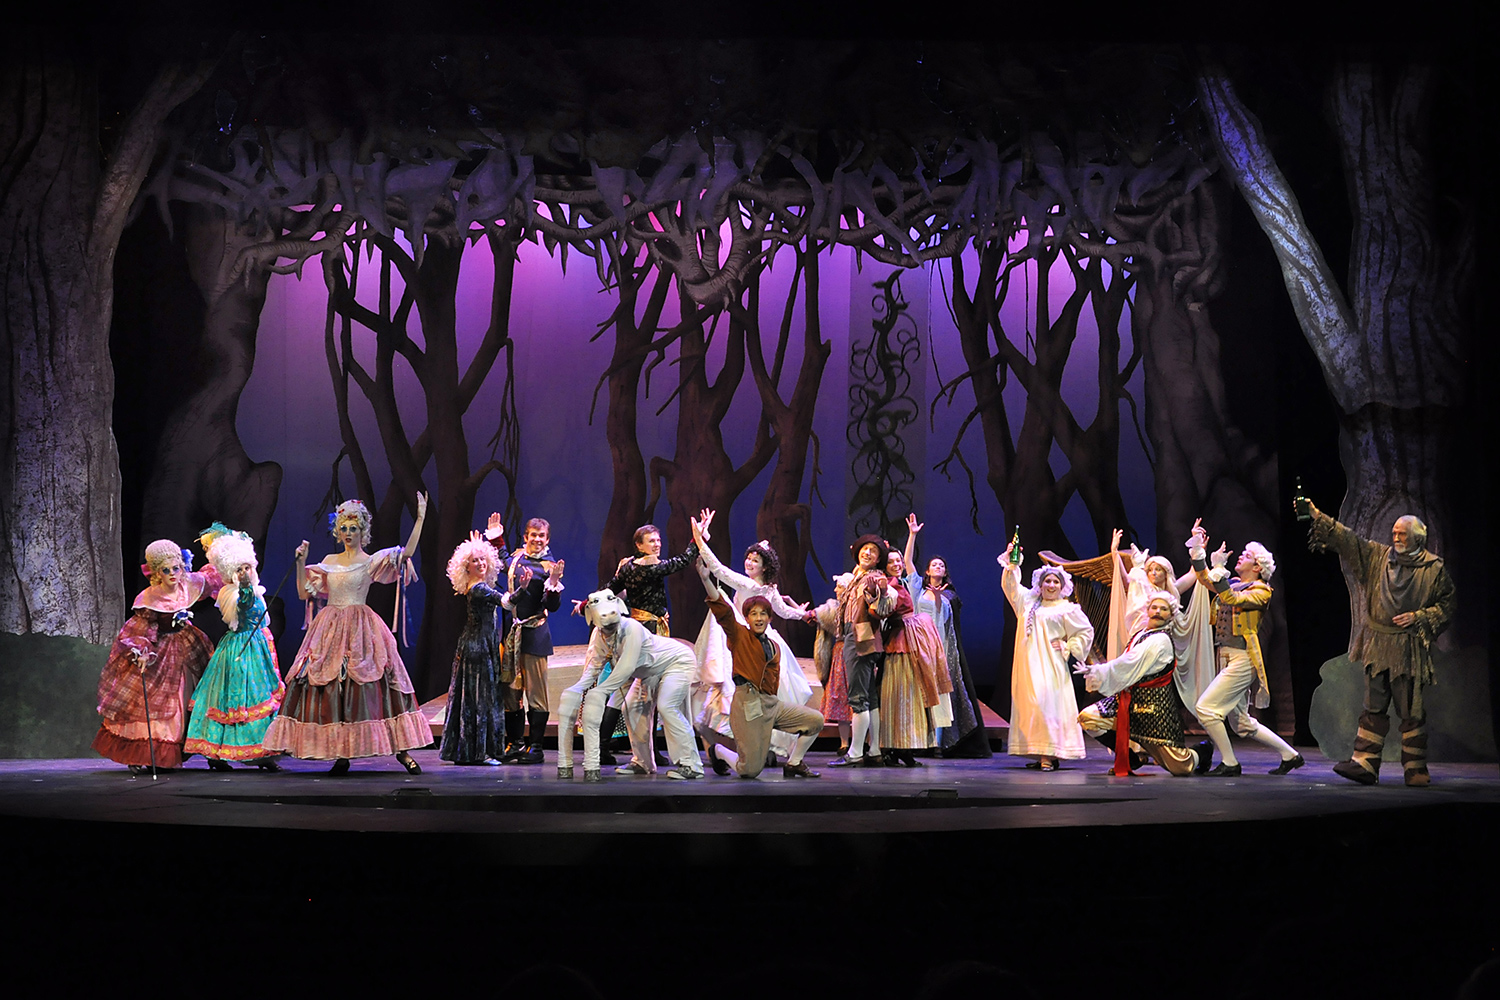 %22Into+the+Woods%22+is+an++award-winning+Broadway+musical+from+Stephen+Sondheim.+Photo+courtesy+of+Cathy+Kuehner